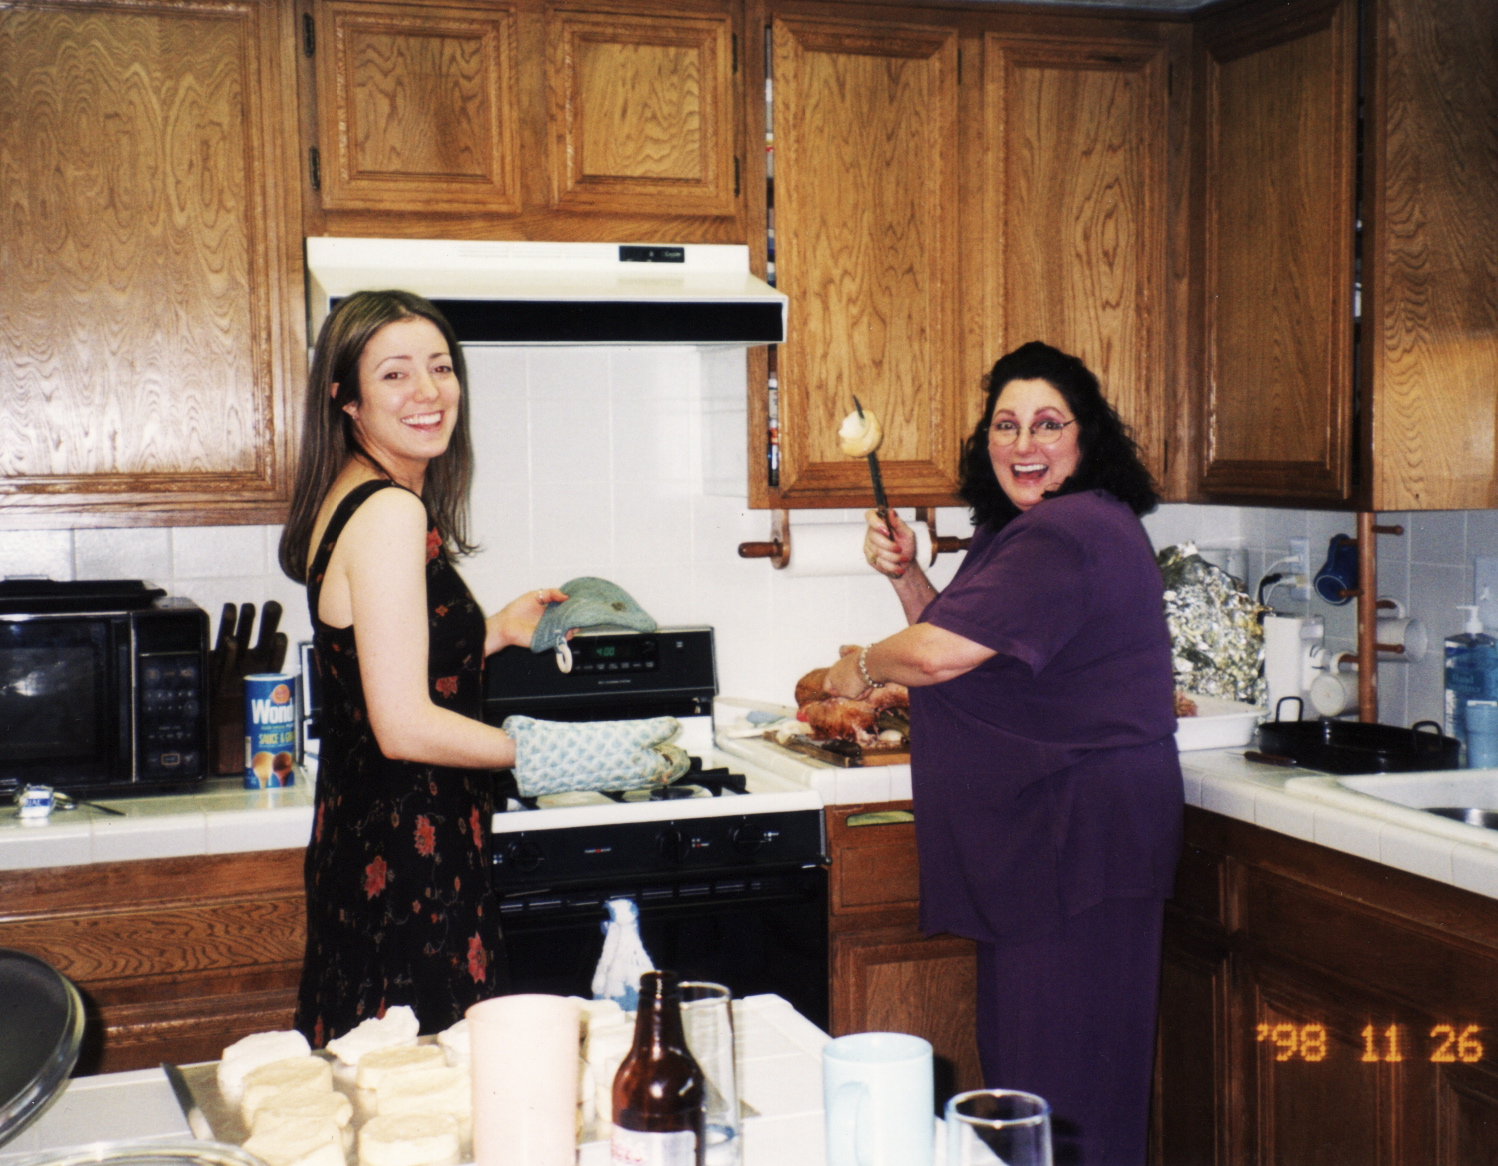 me and mom in gram's kitchen, thanksgiving 1998